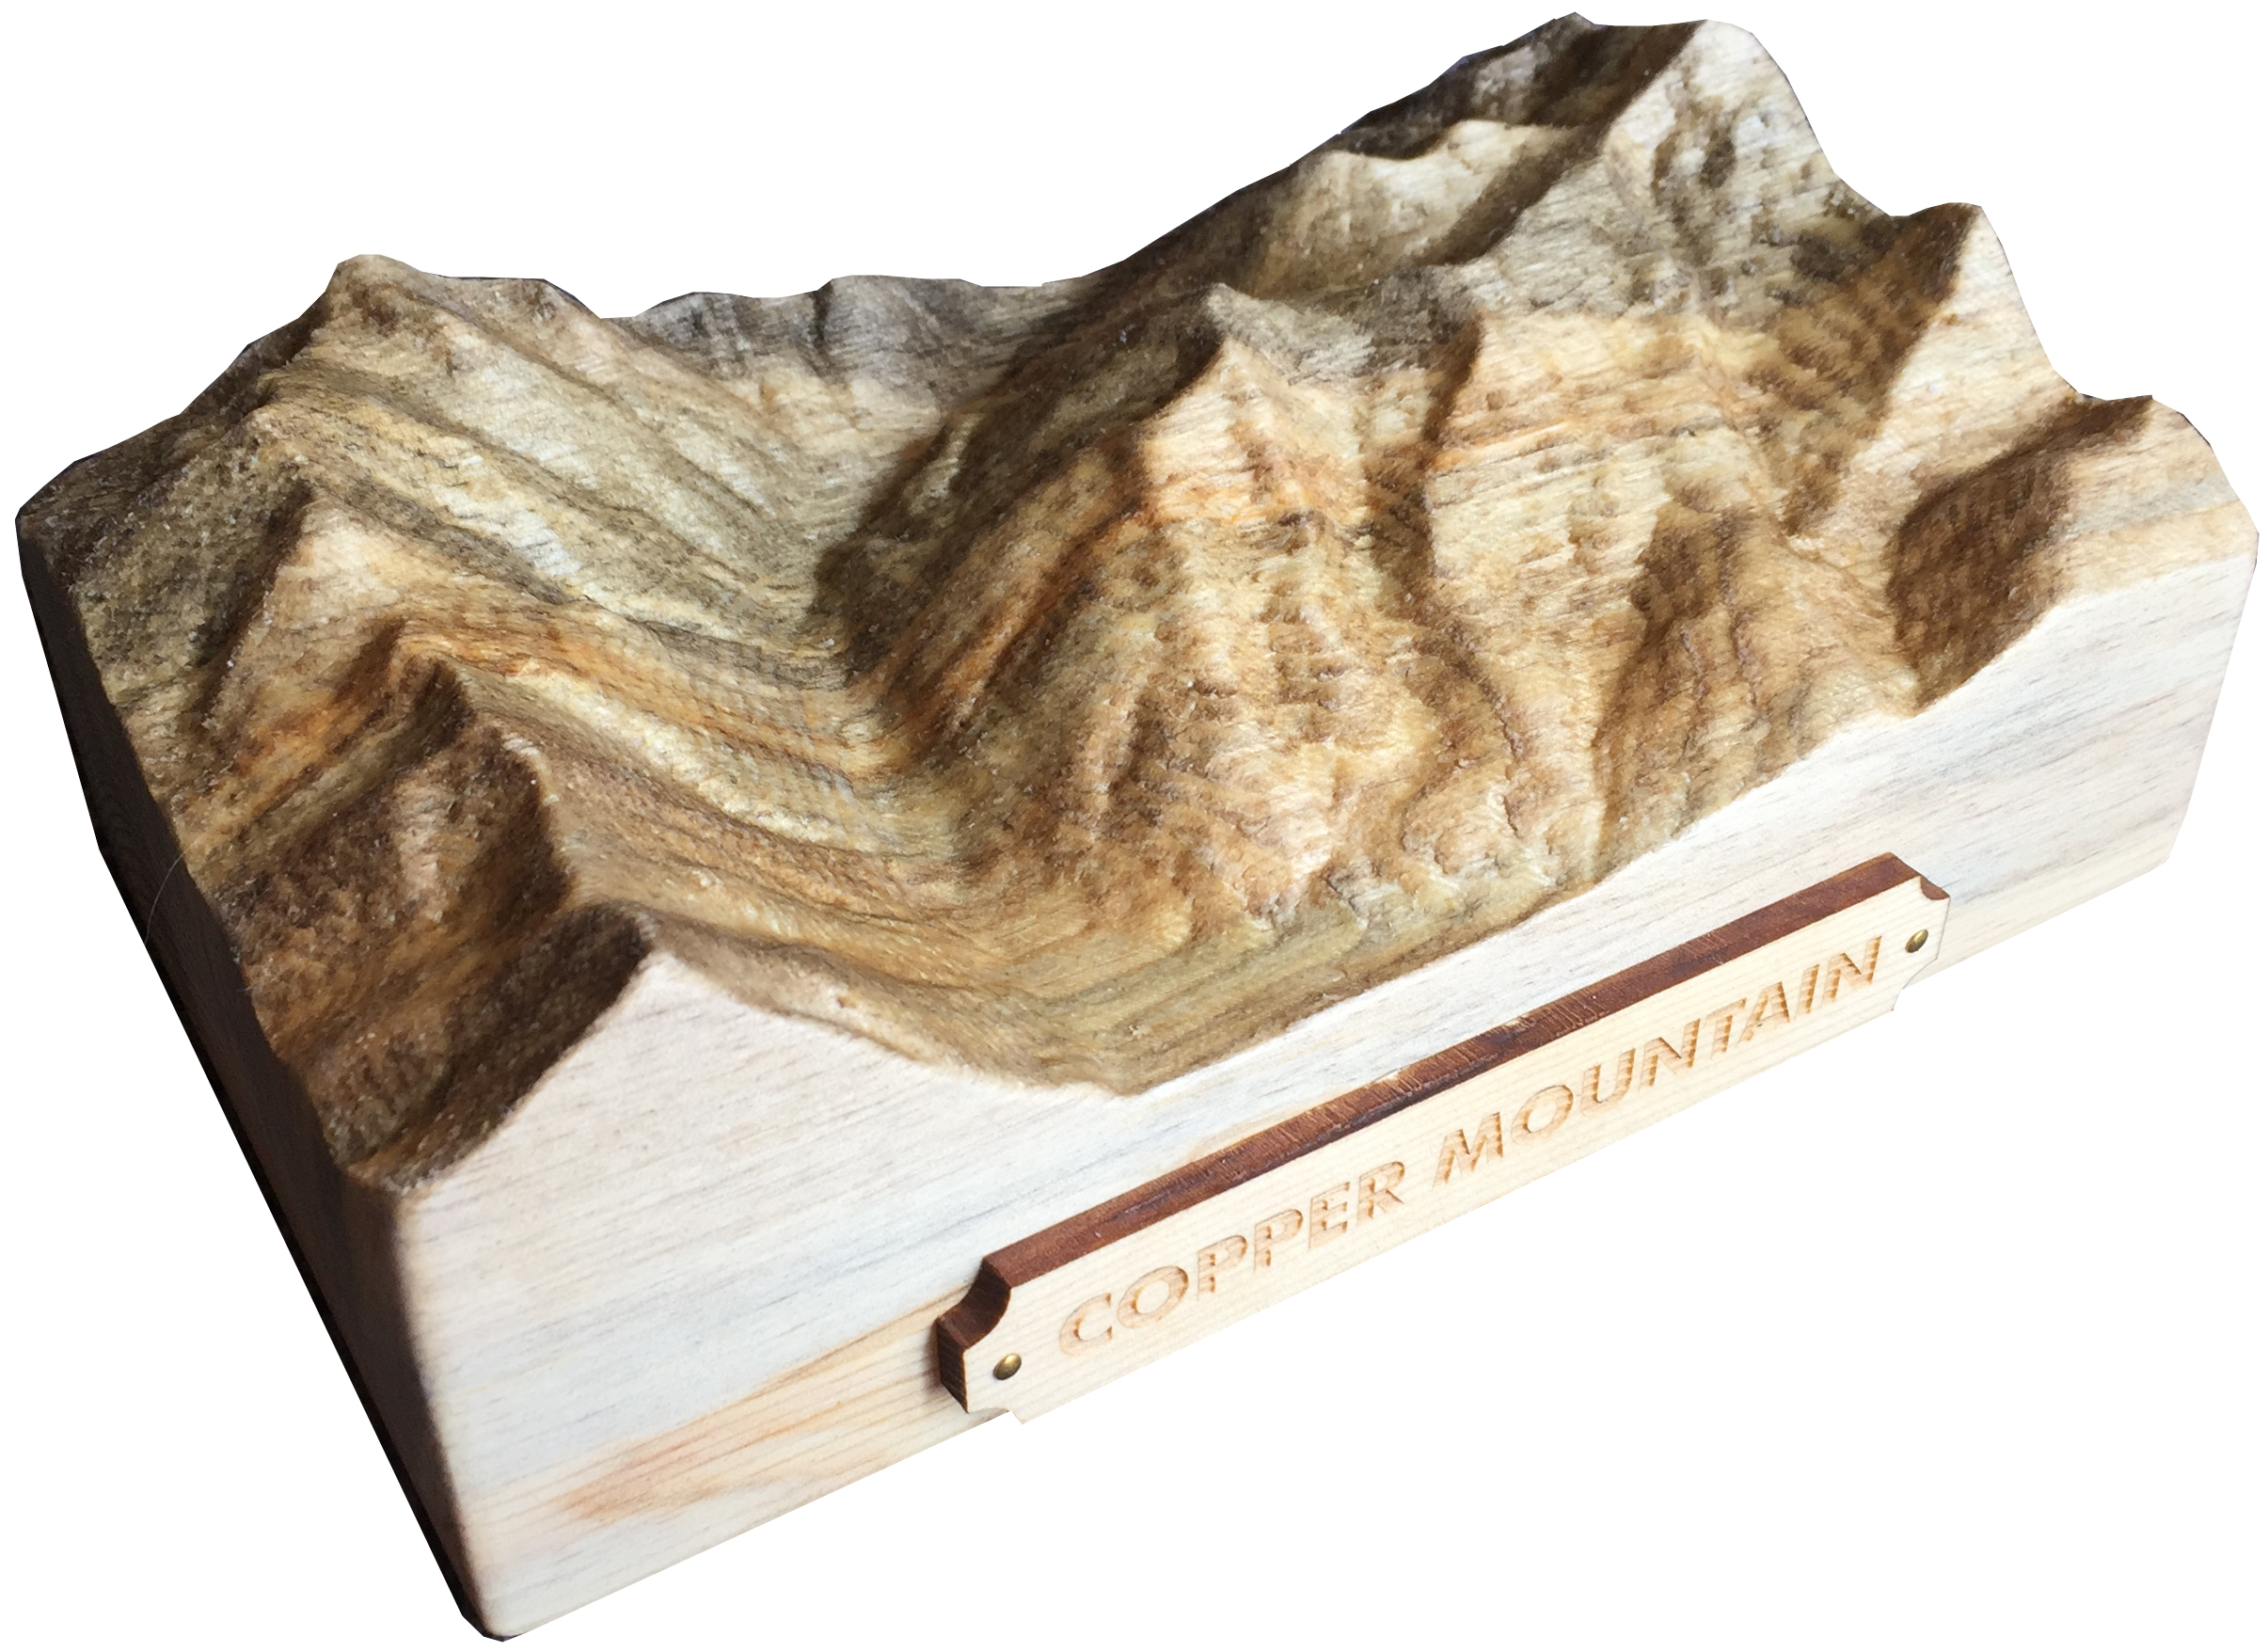 Copper Mountain Gift Carving.jpg